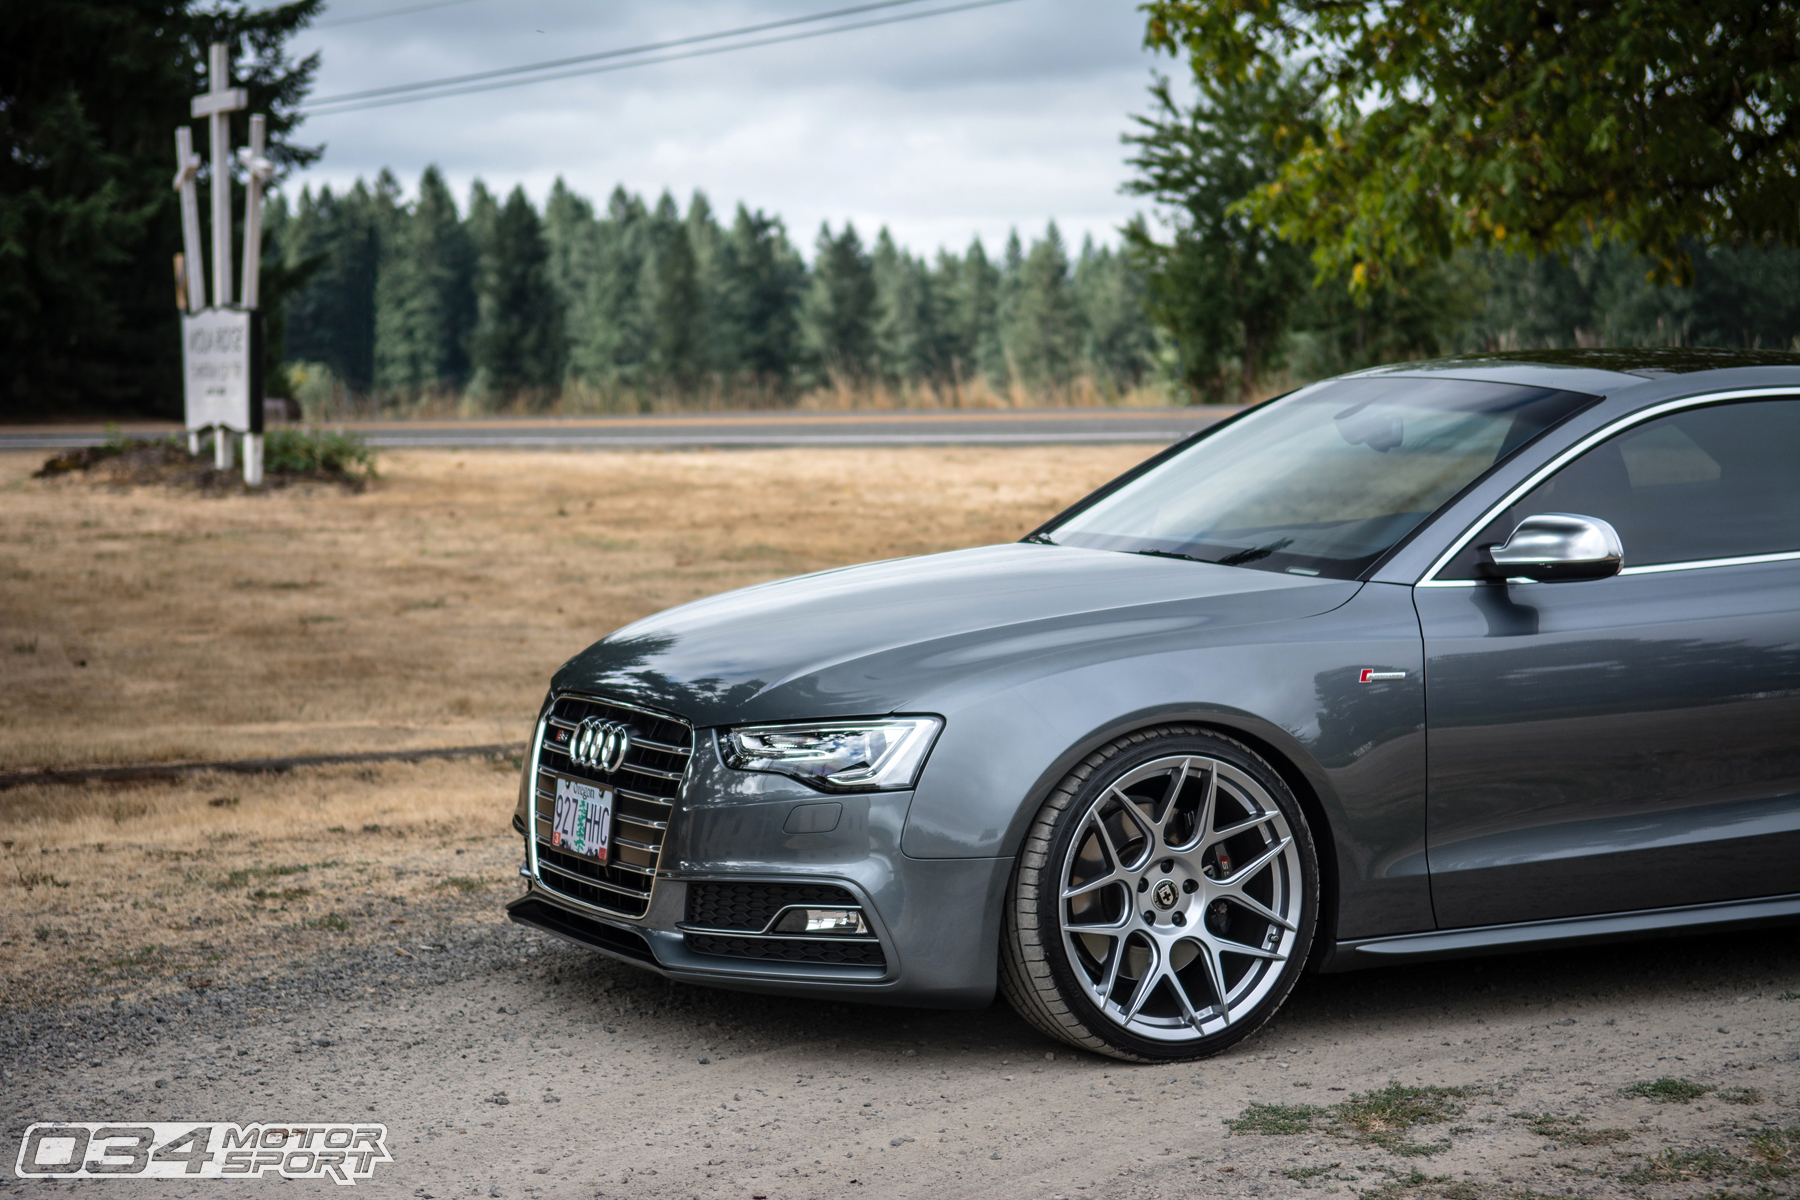 HRE FlowForm FF01 Wheels on Monsoon Gray B8.5 Audi S5